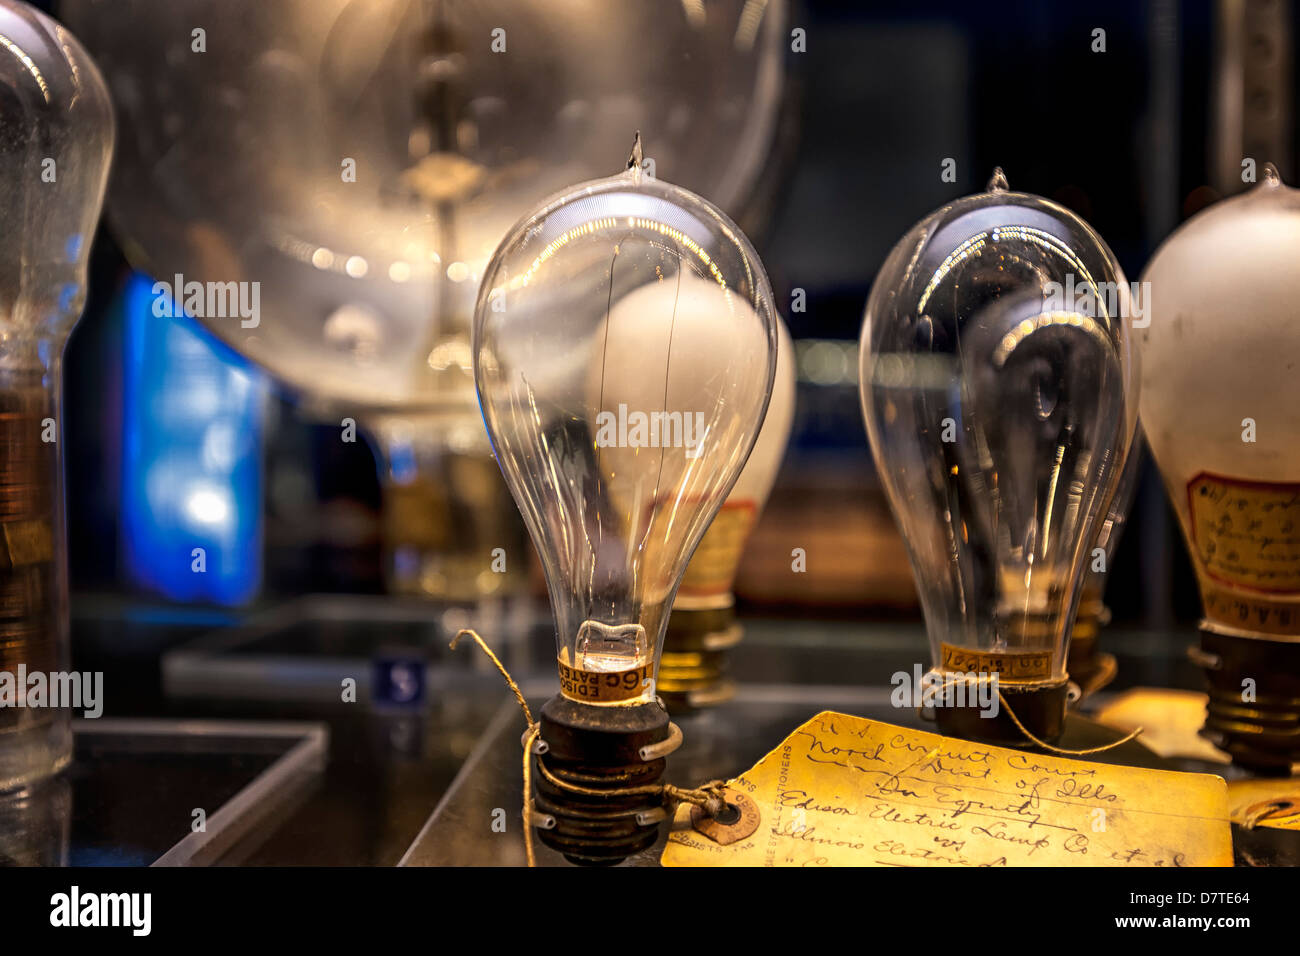 Thomas Edison Light bulbs with hand written lab notes. On display at the Museum of Science and Industry - Stock Image